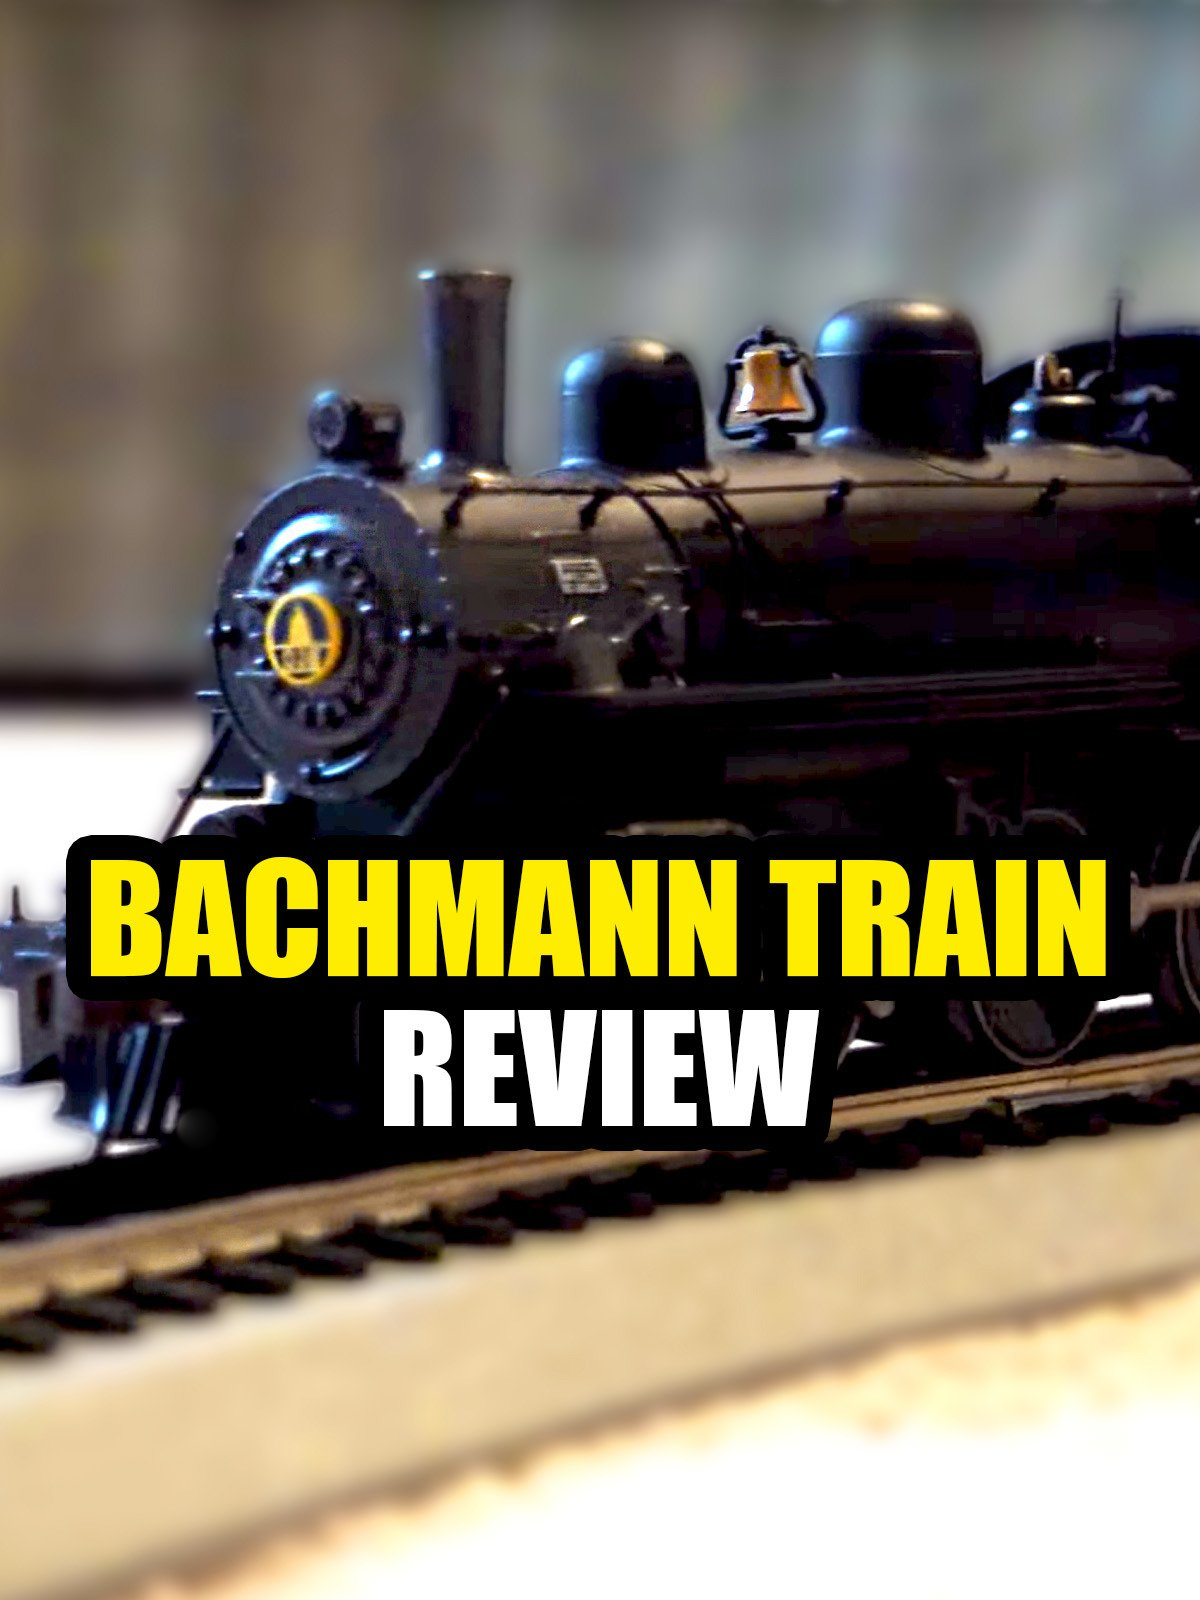 Review: Bachmann Train Review